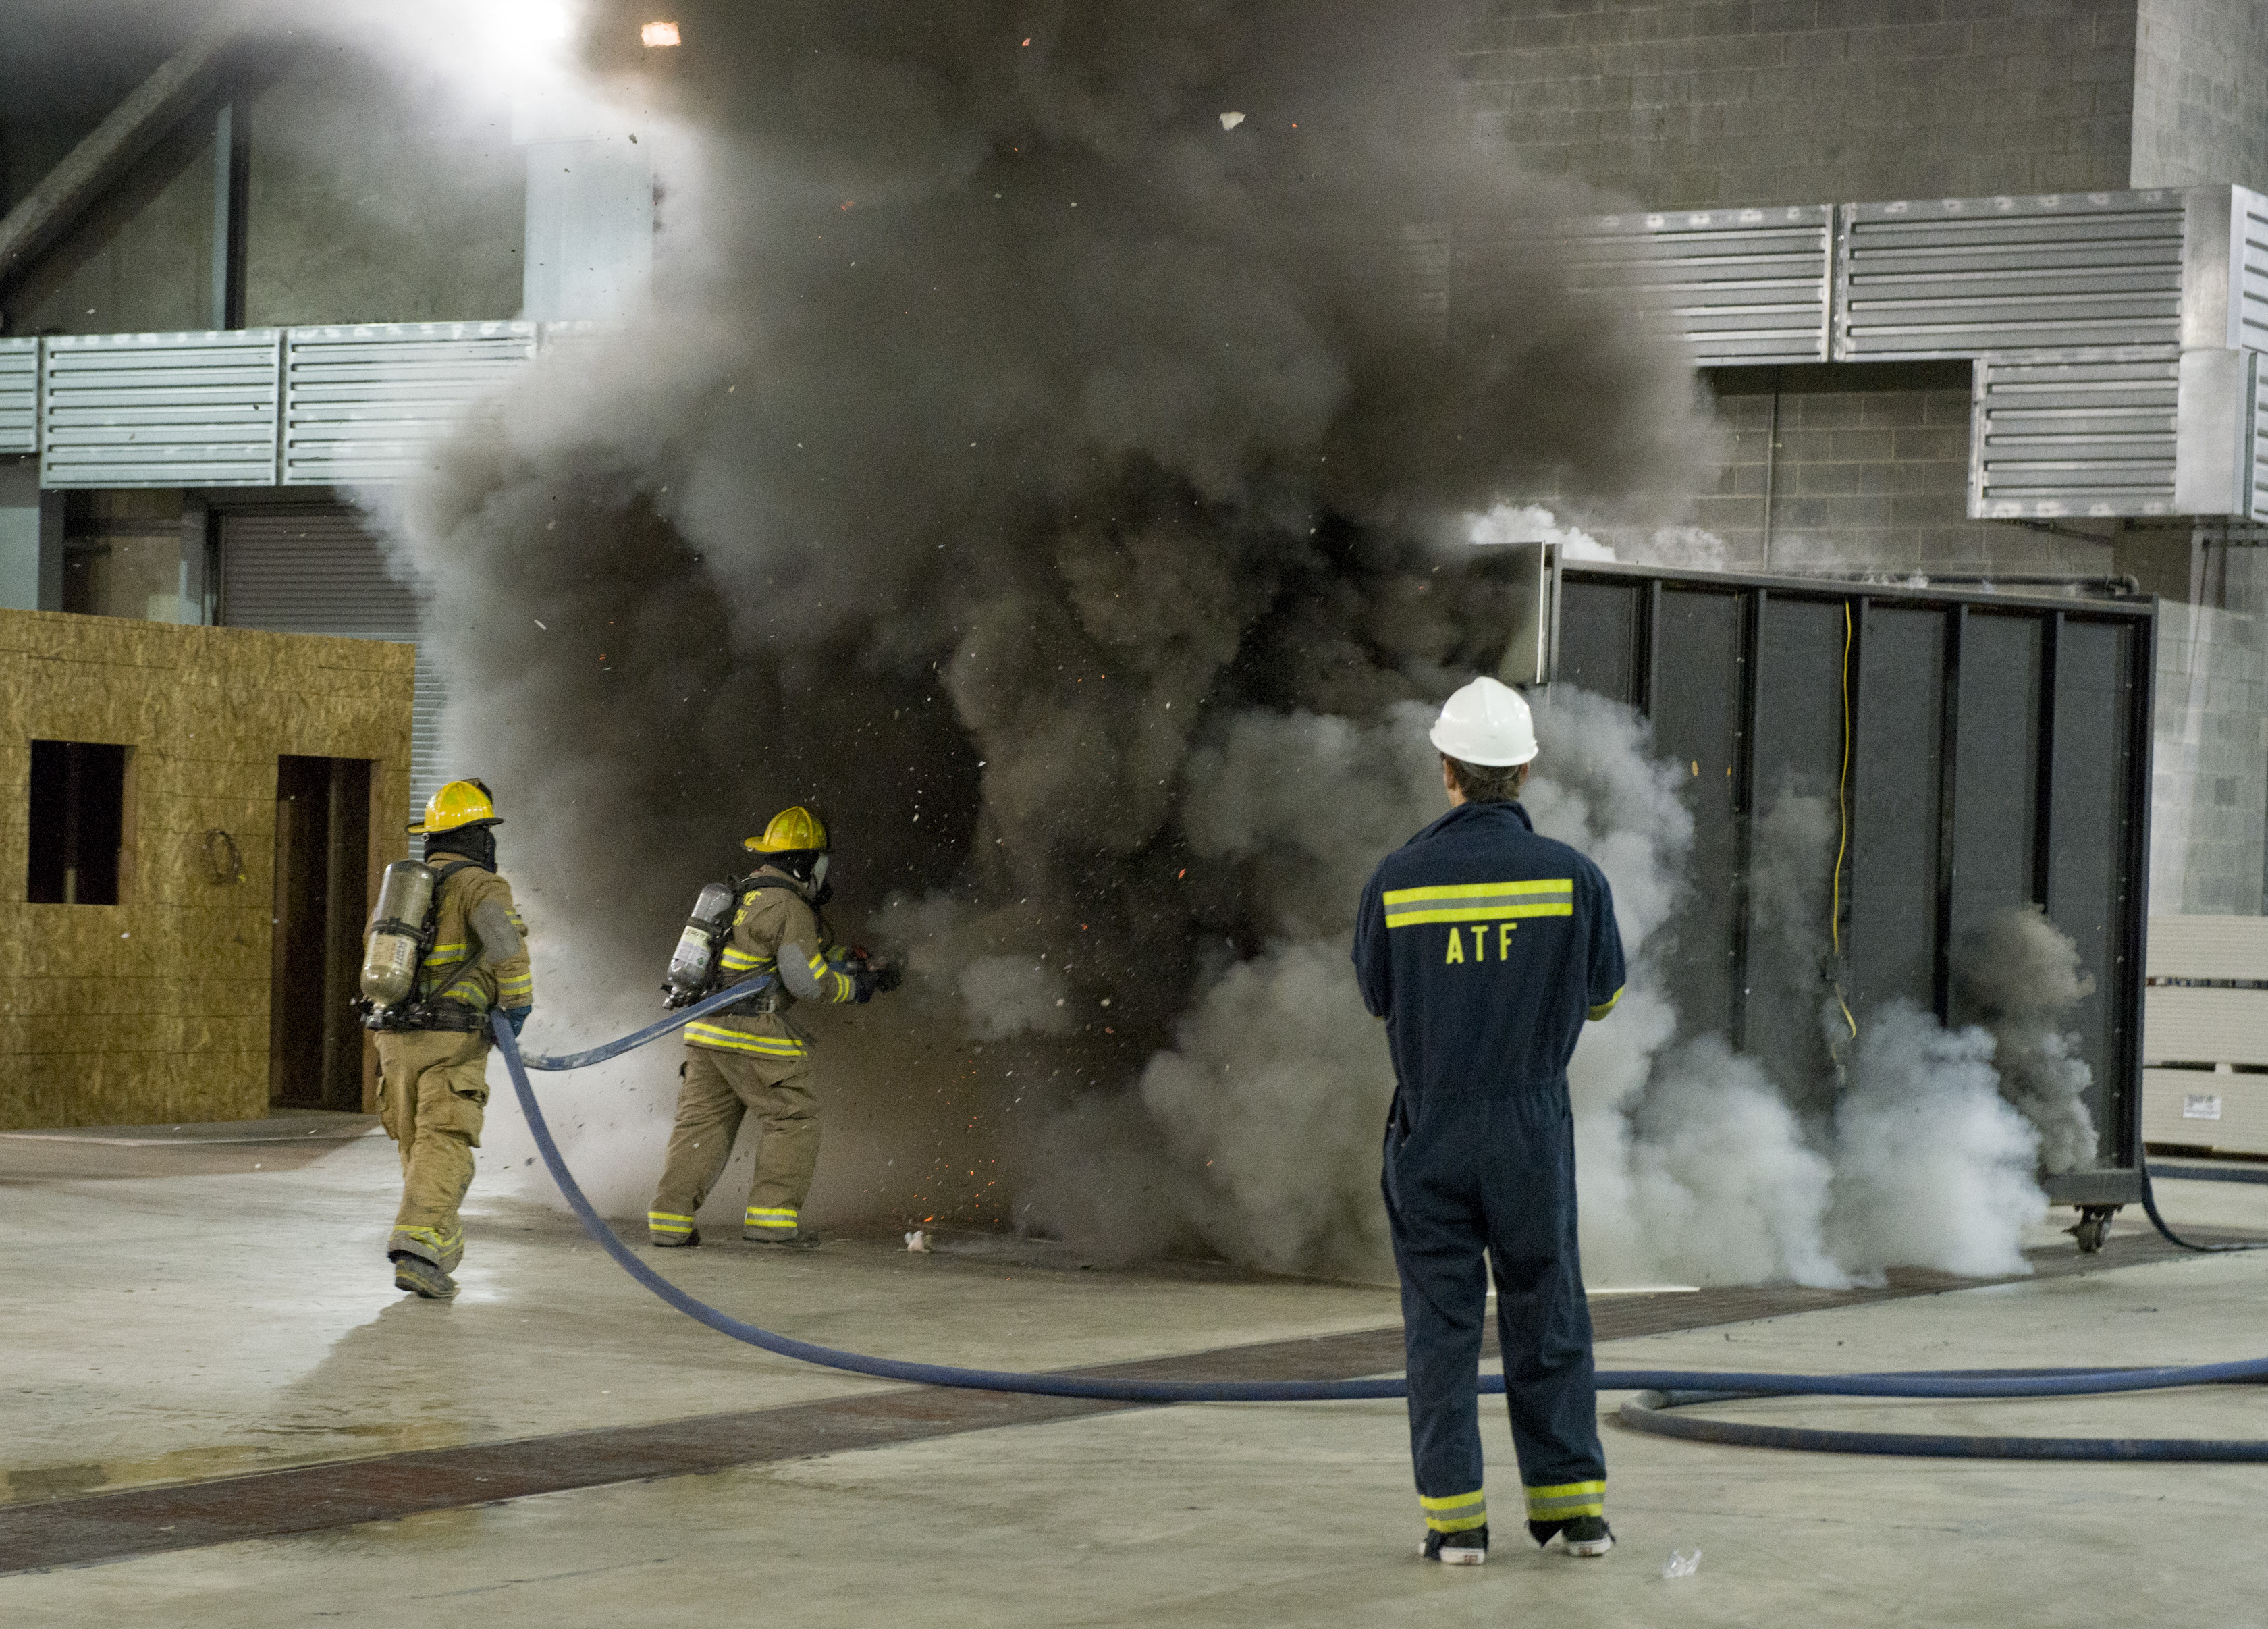 Two firemen use their hoses to extinguish a fire overseen by an ATF instructor.